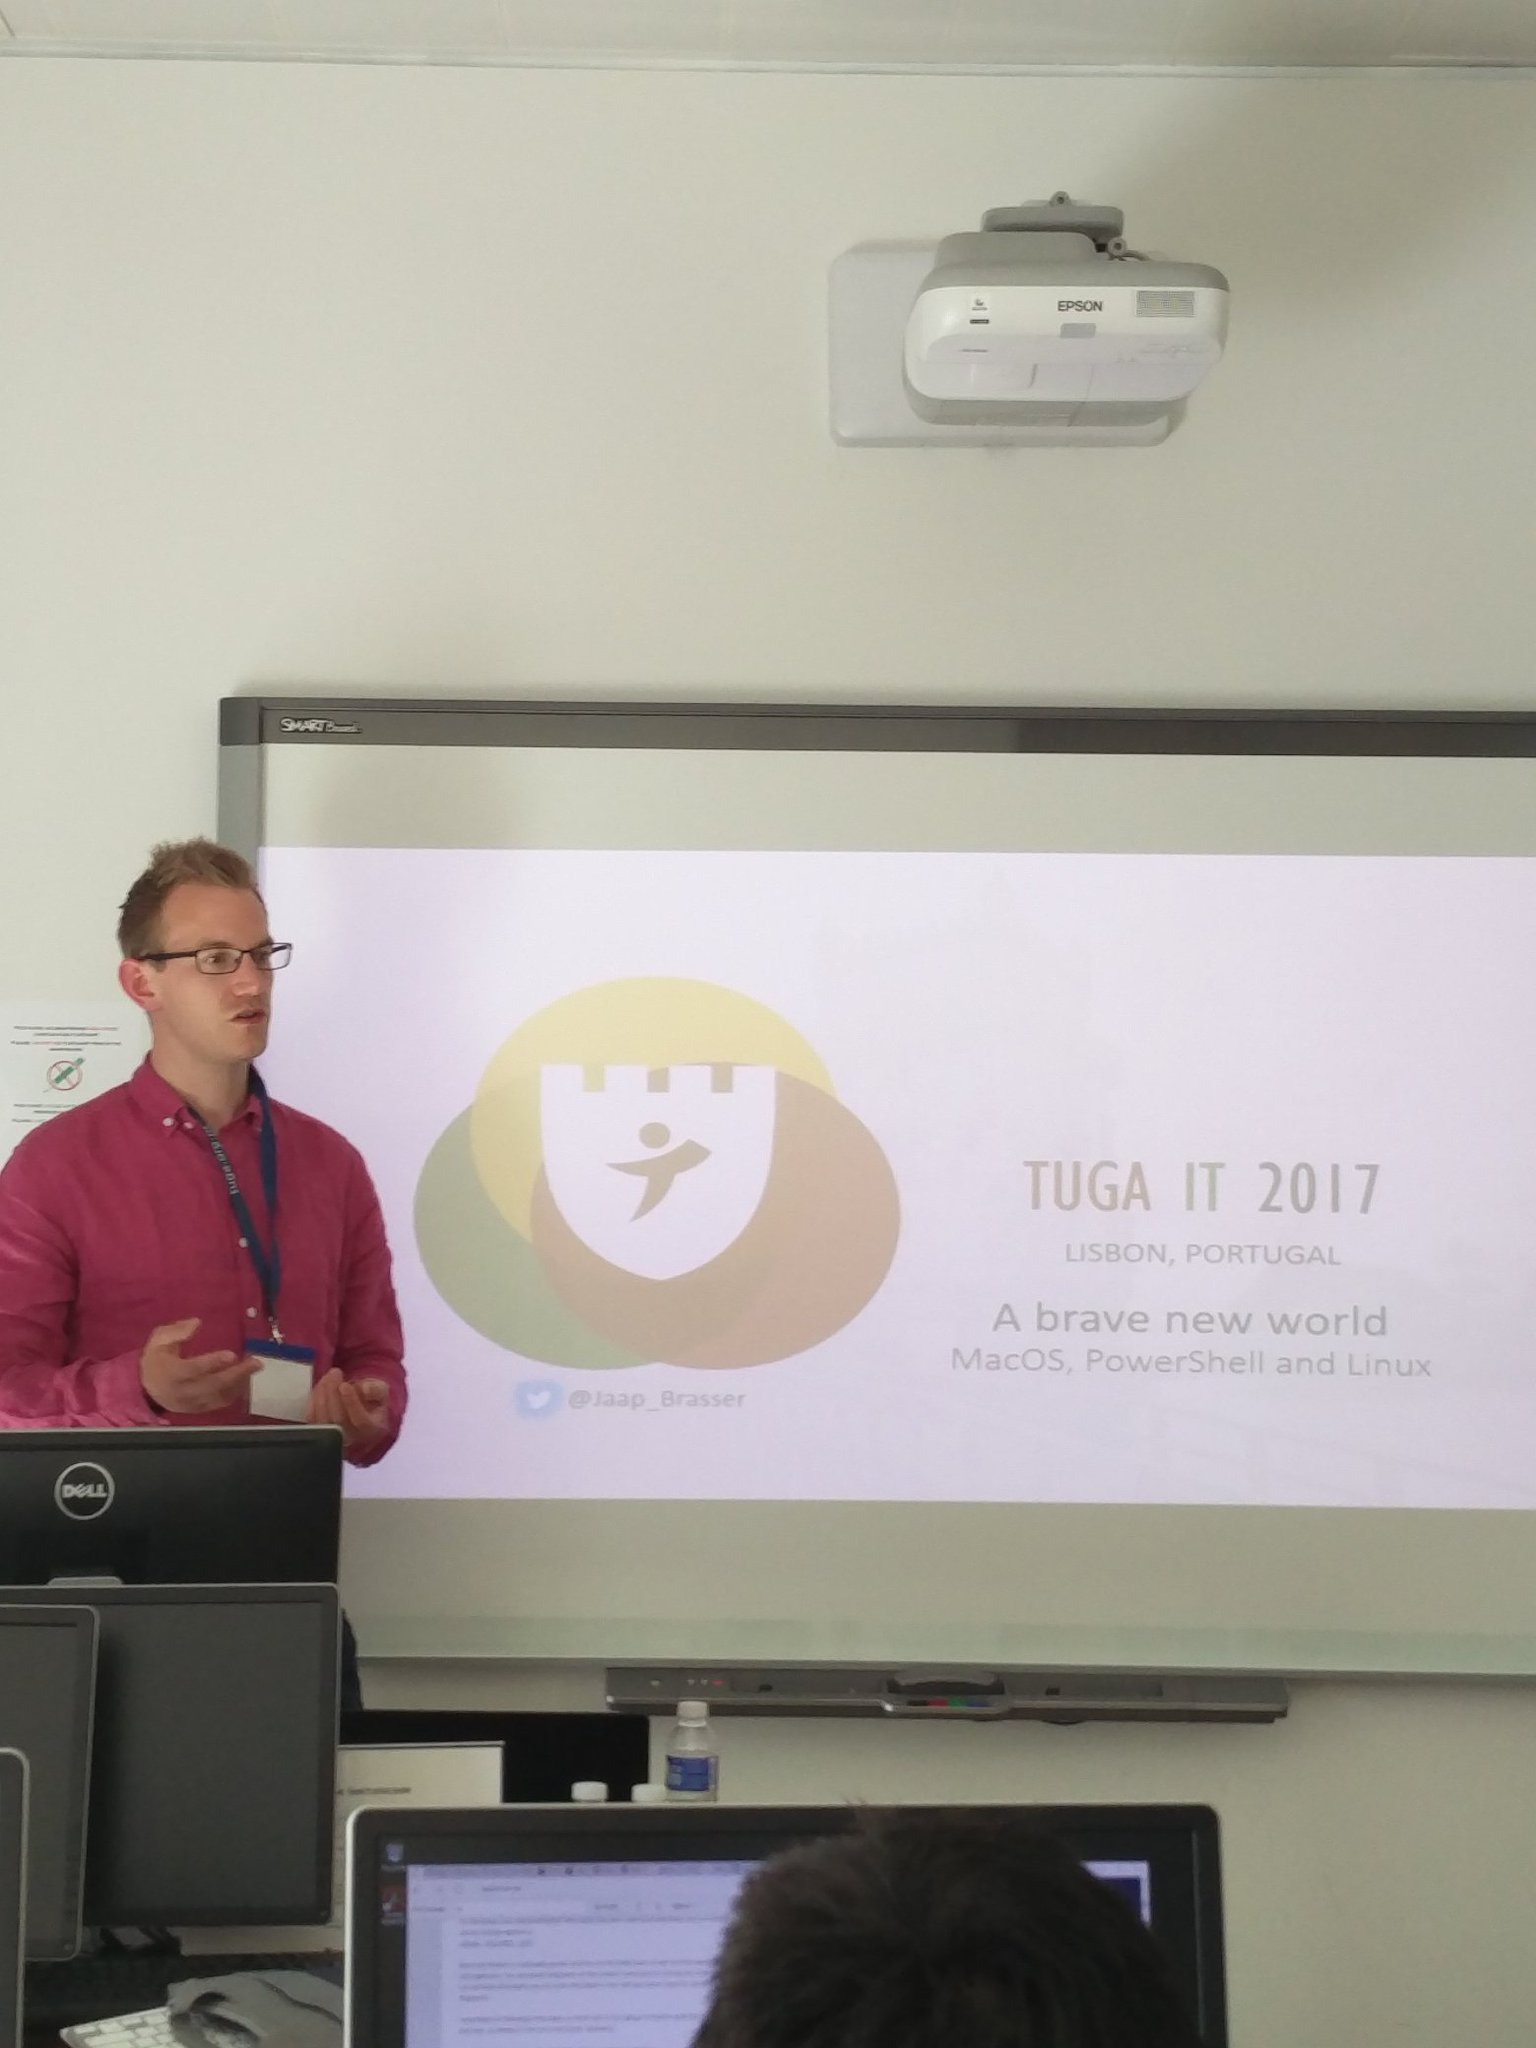 Presenting on open source PowerShell and PowerShell 6